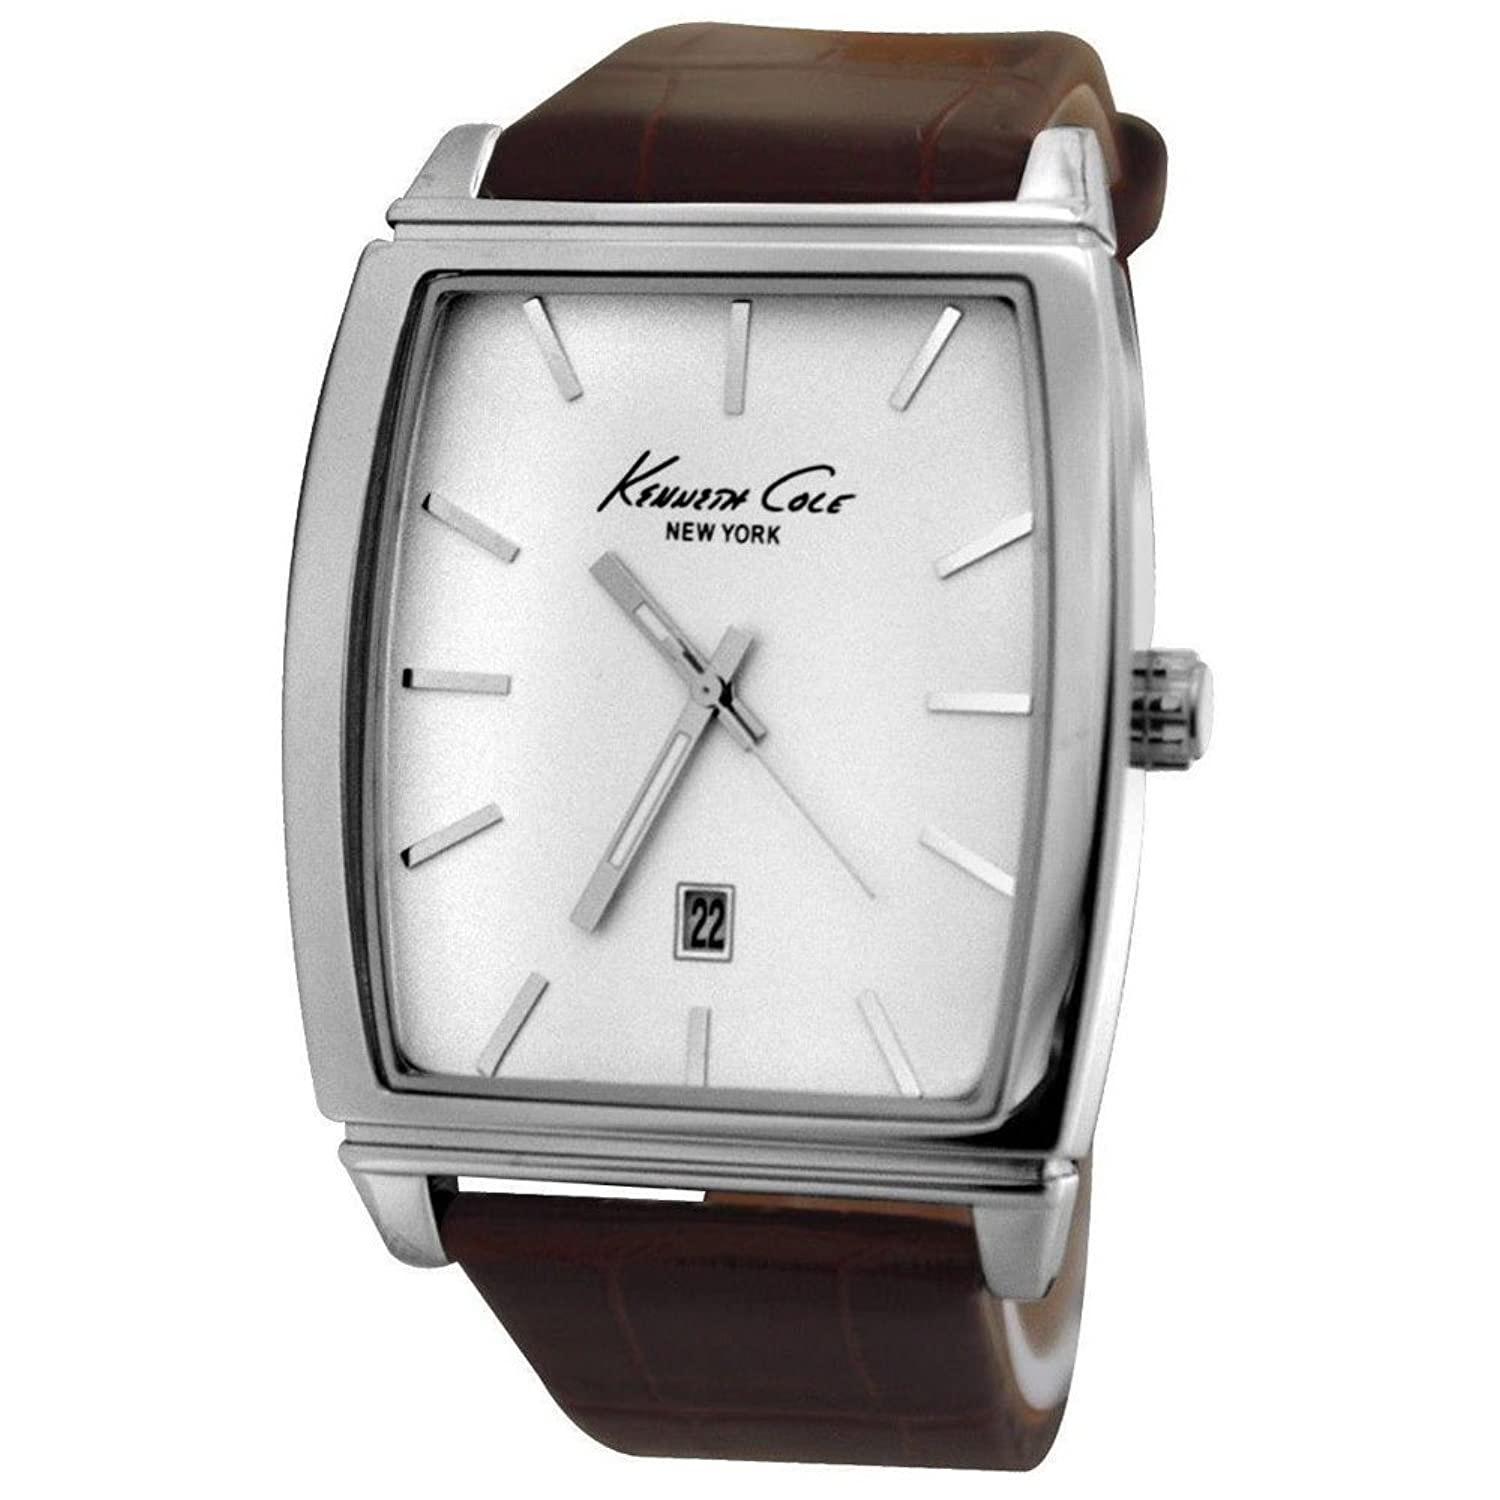 Kenneth Cole KCW1026 White Analog Date Dial Brown Leather Strap Men Watch NEW